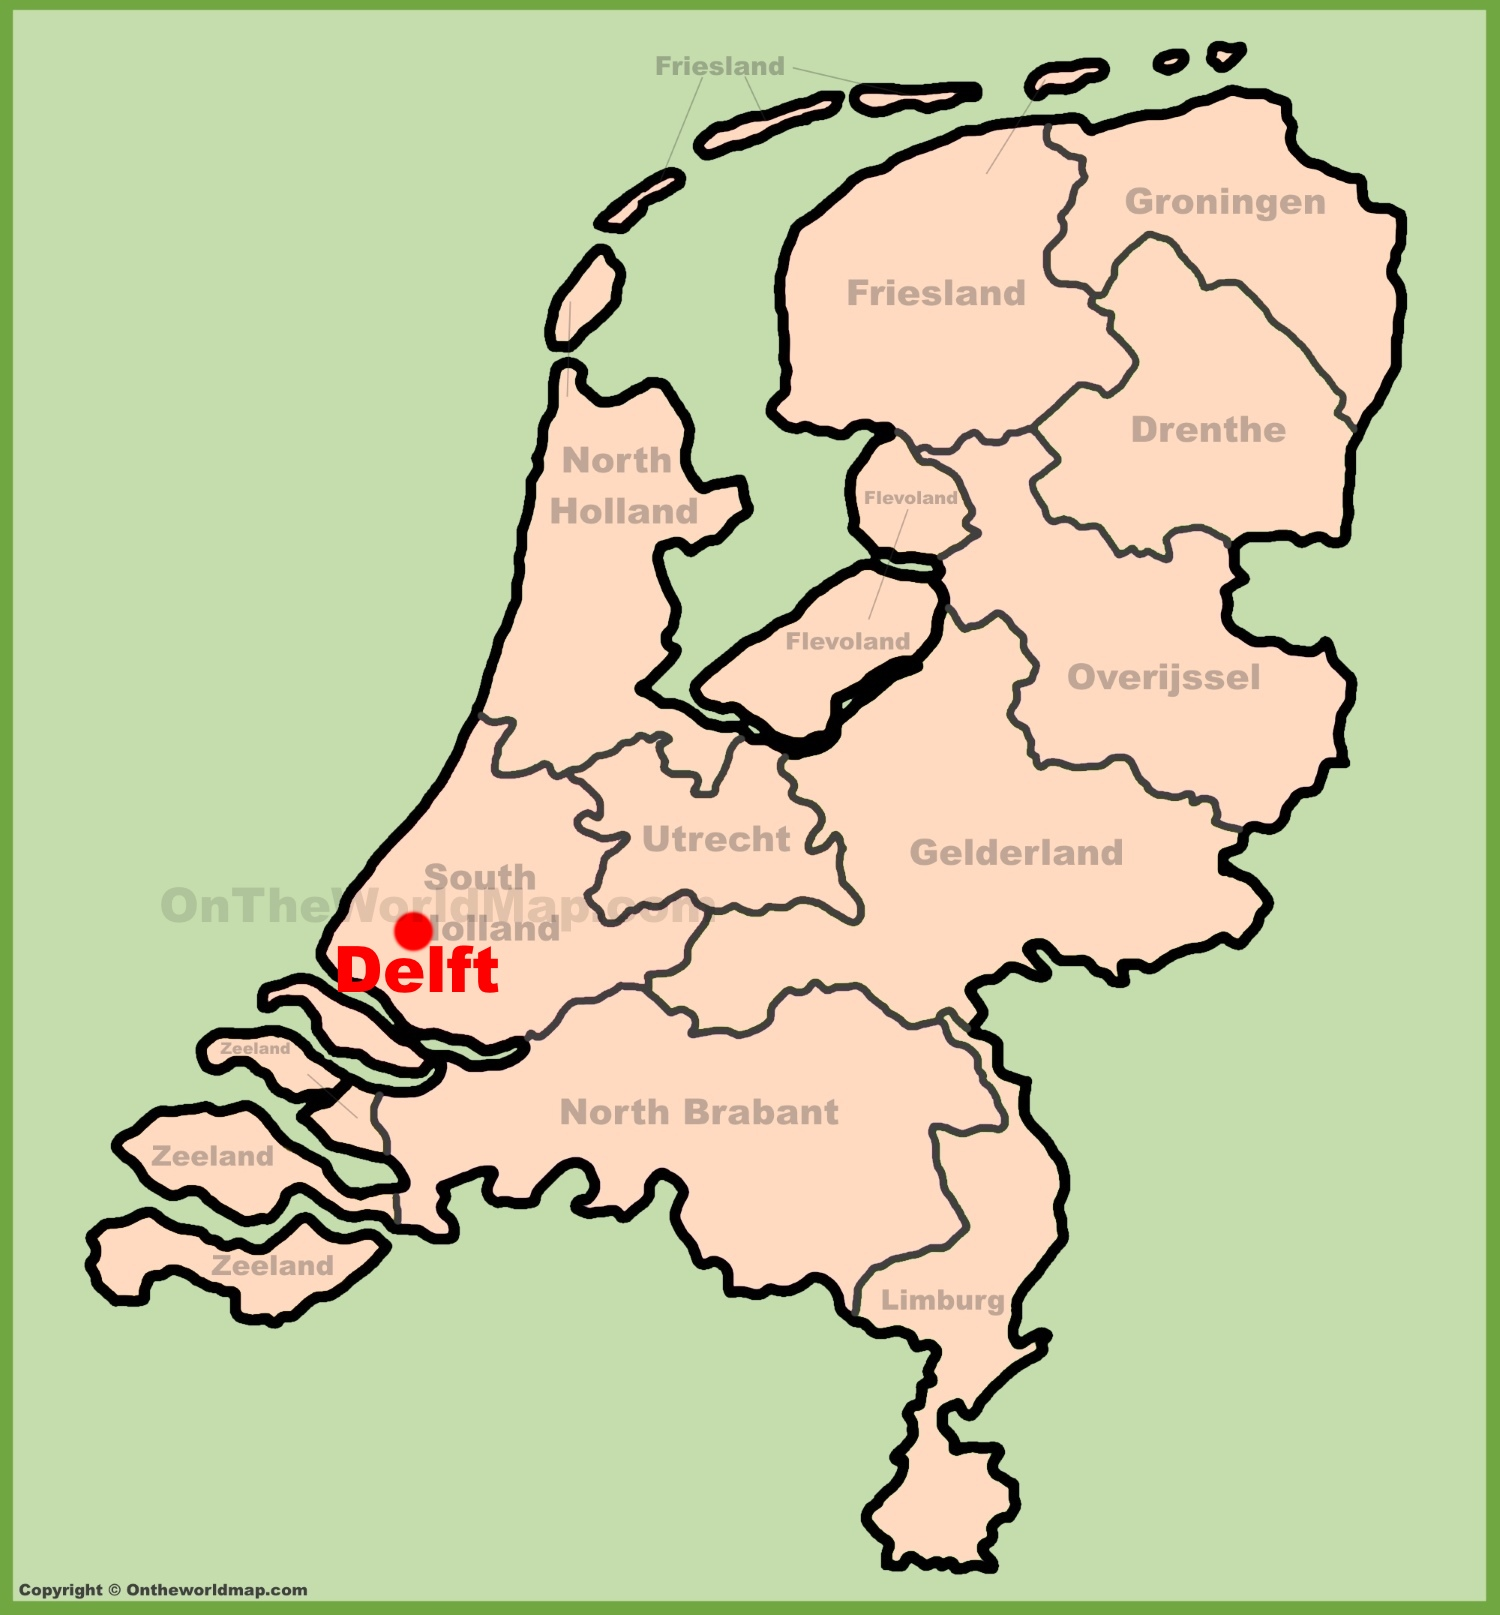 Delft location on the Netherlands map